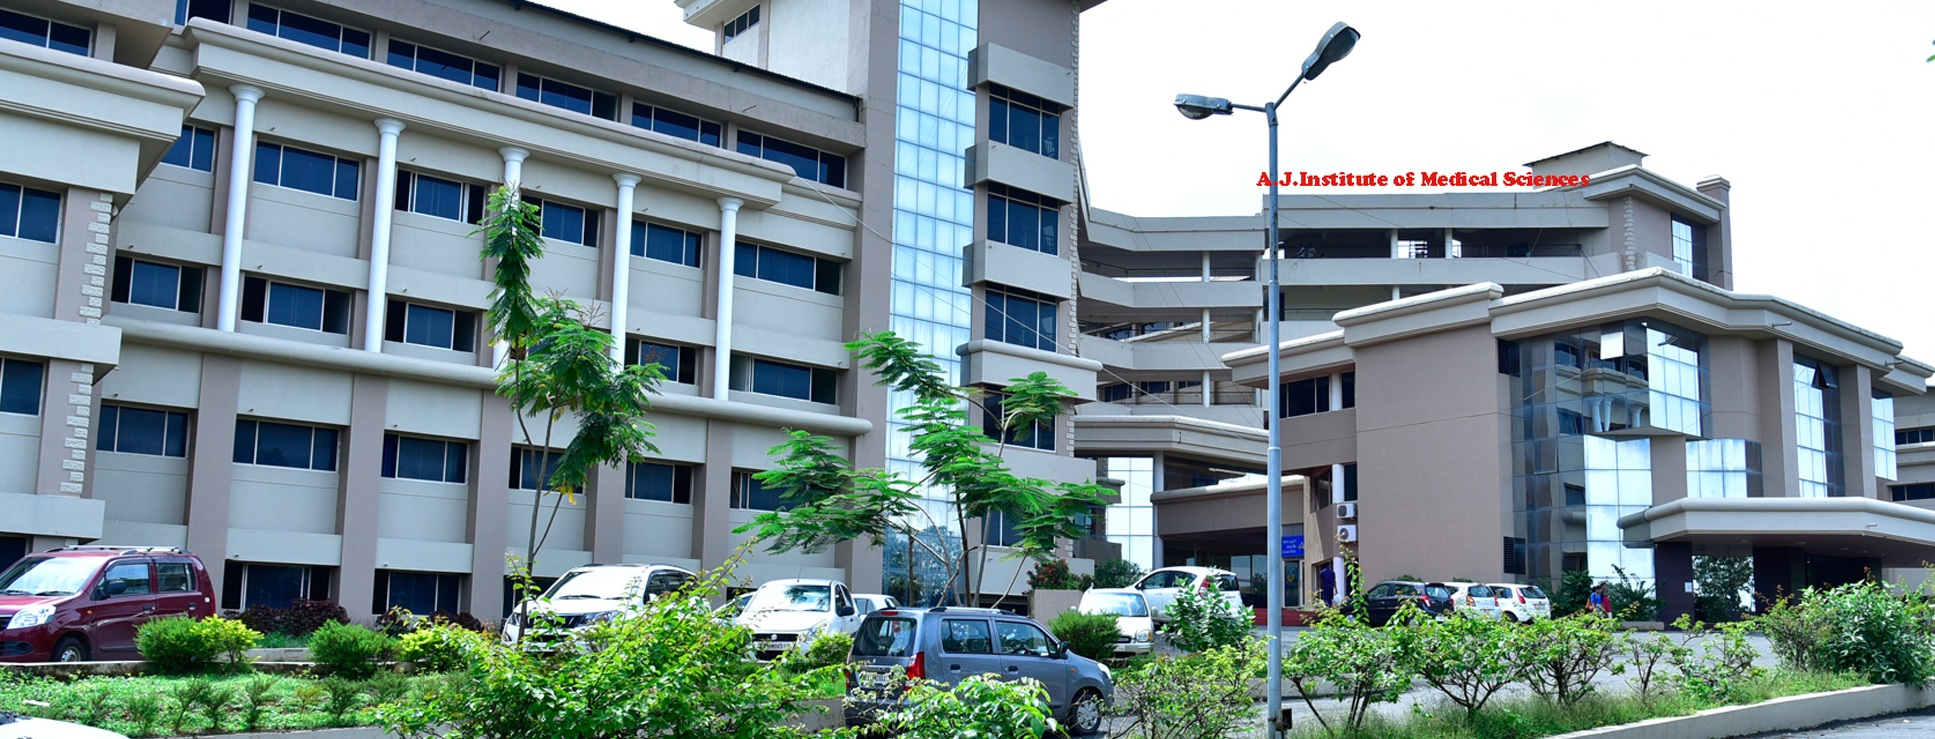 A.J. Institute of Medical Sciences and Research Centre, Mangalore